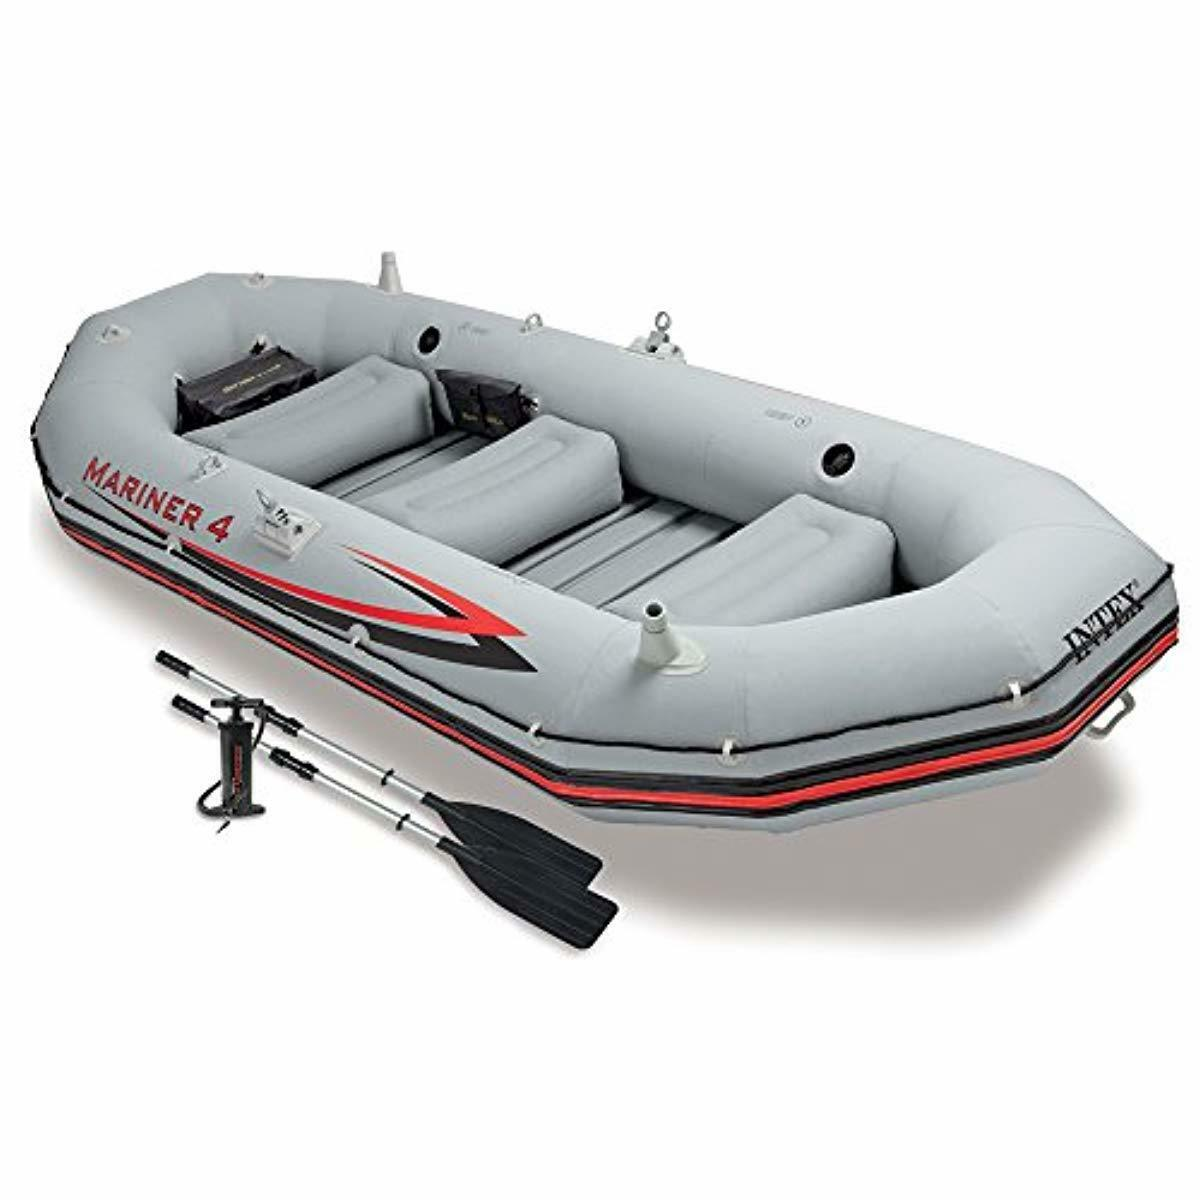 4 Man Inflatable Boat Set Best 4-Person Small Heavy Duty Adu